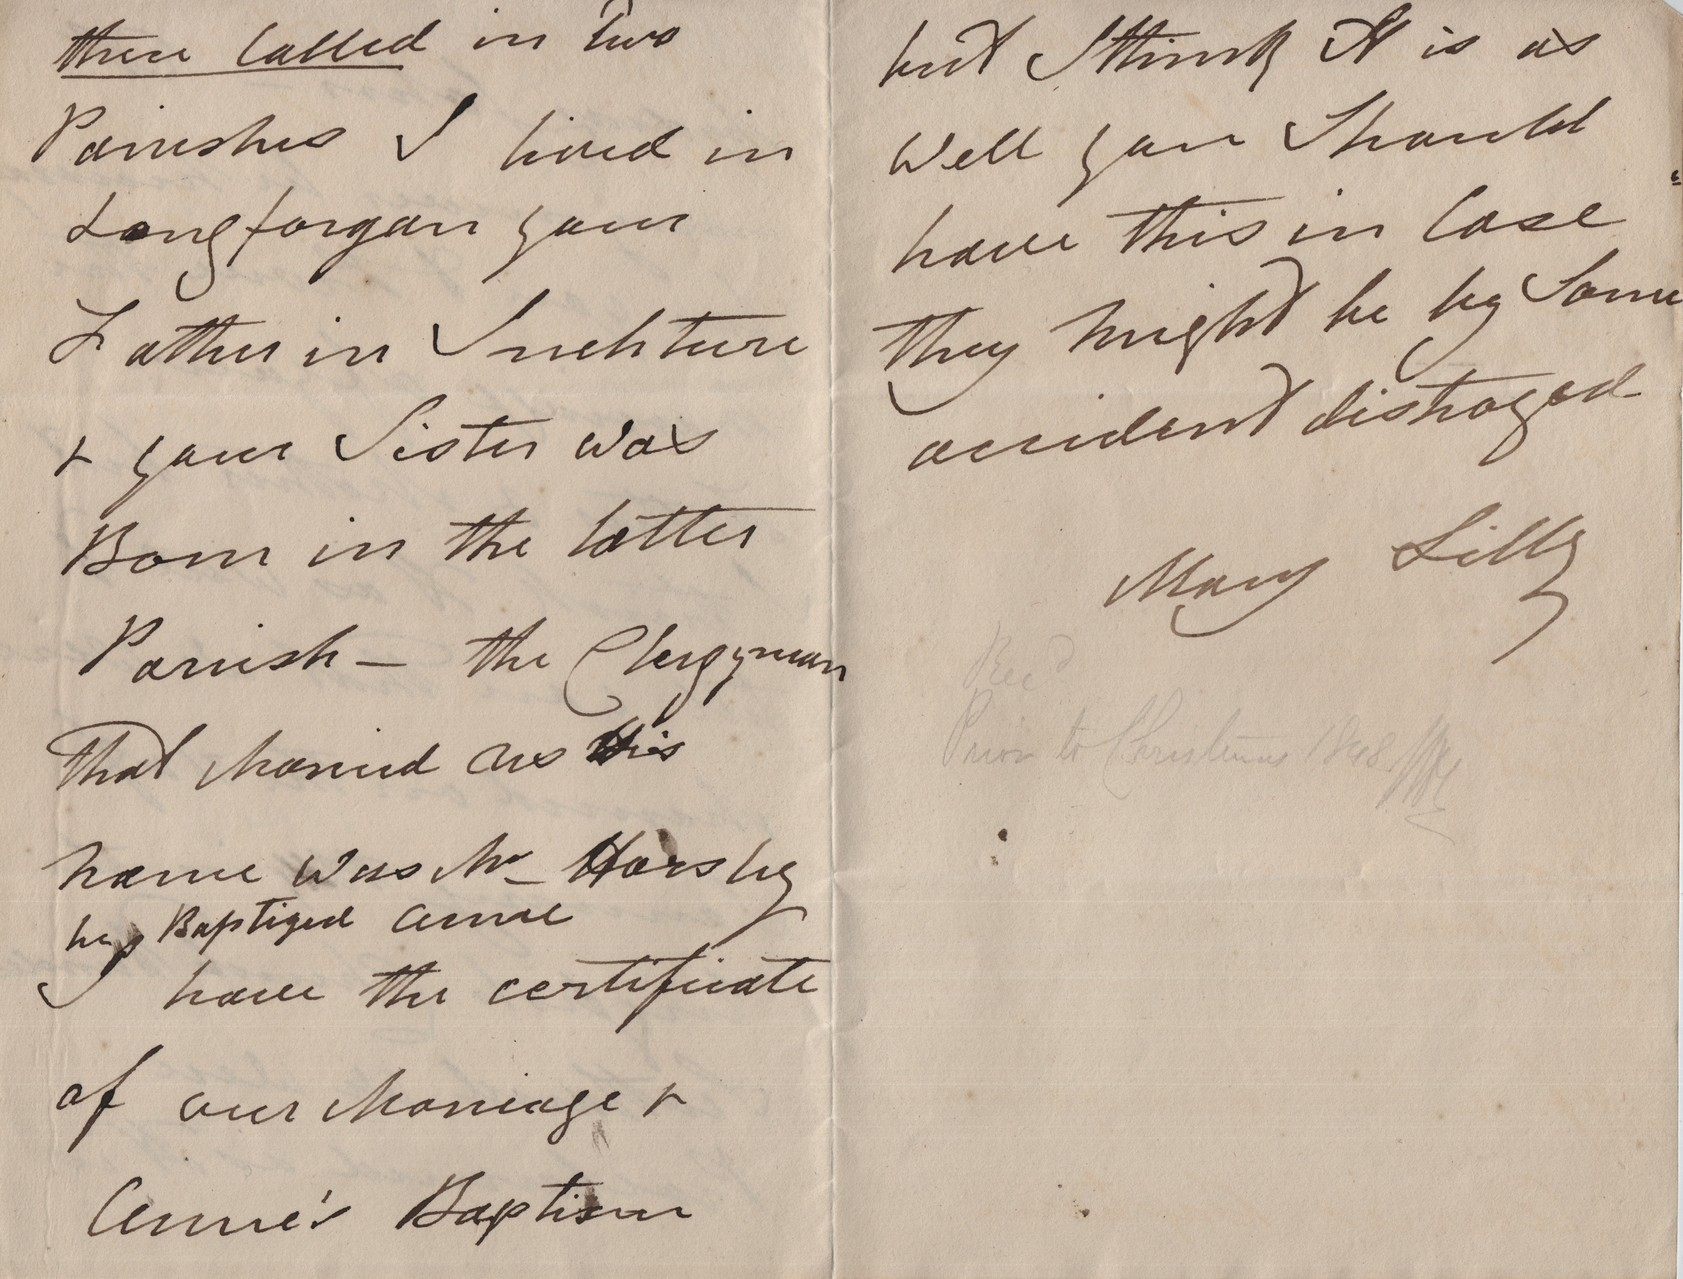 From MDL to JHL rec'd prior to Christmas 1848